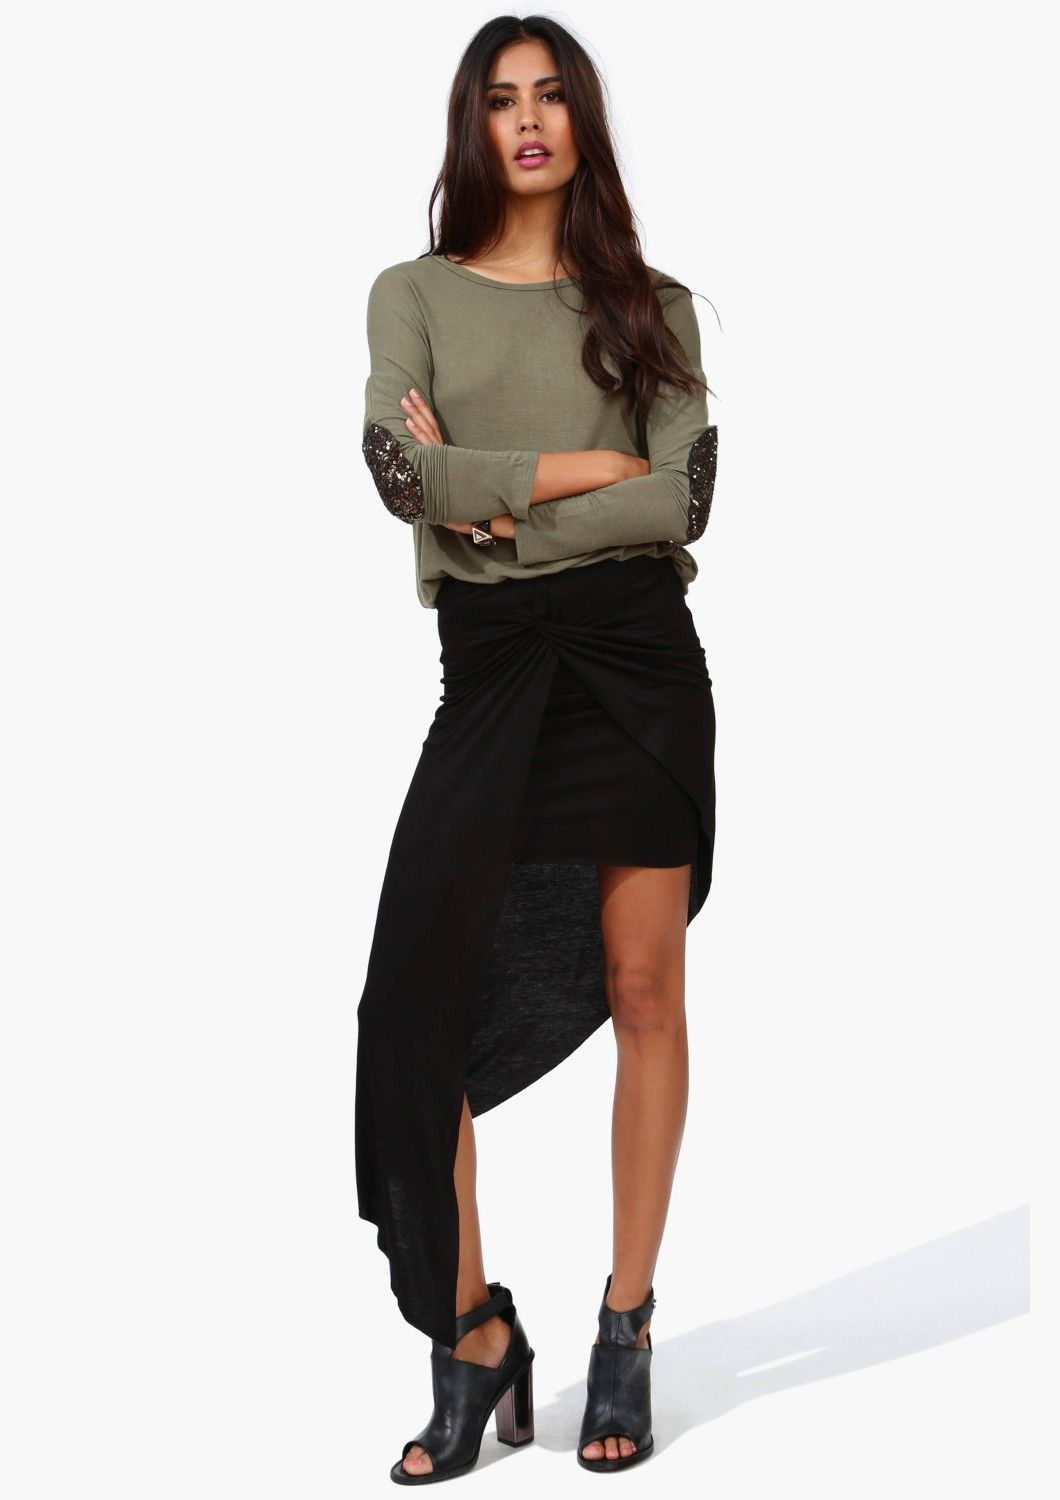 Knot maxi skirt my style pinterest clothes wardrobes and clothing